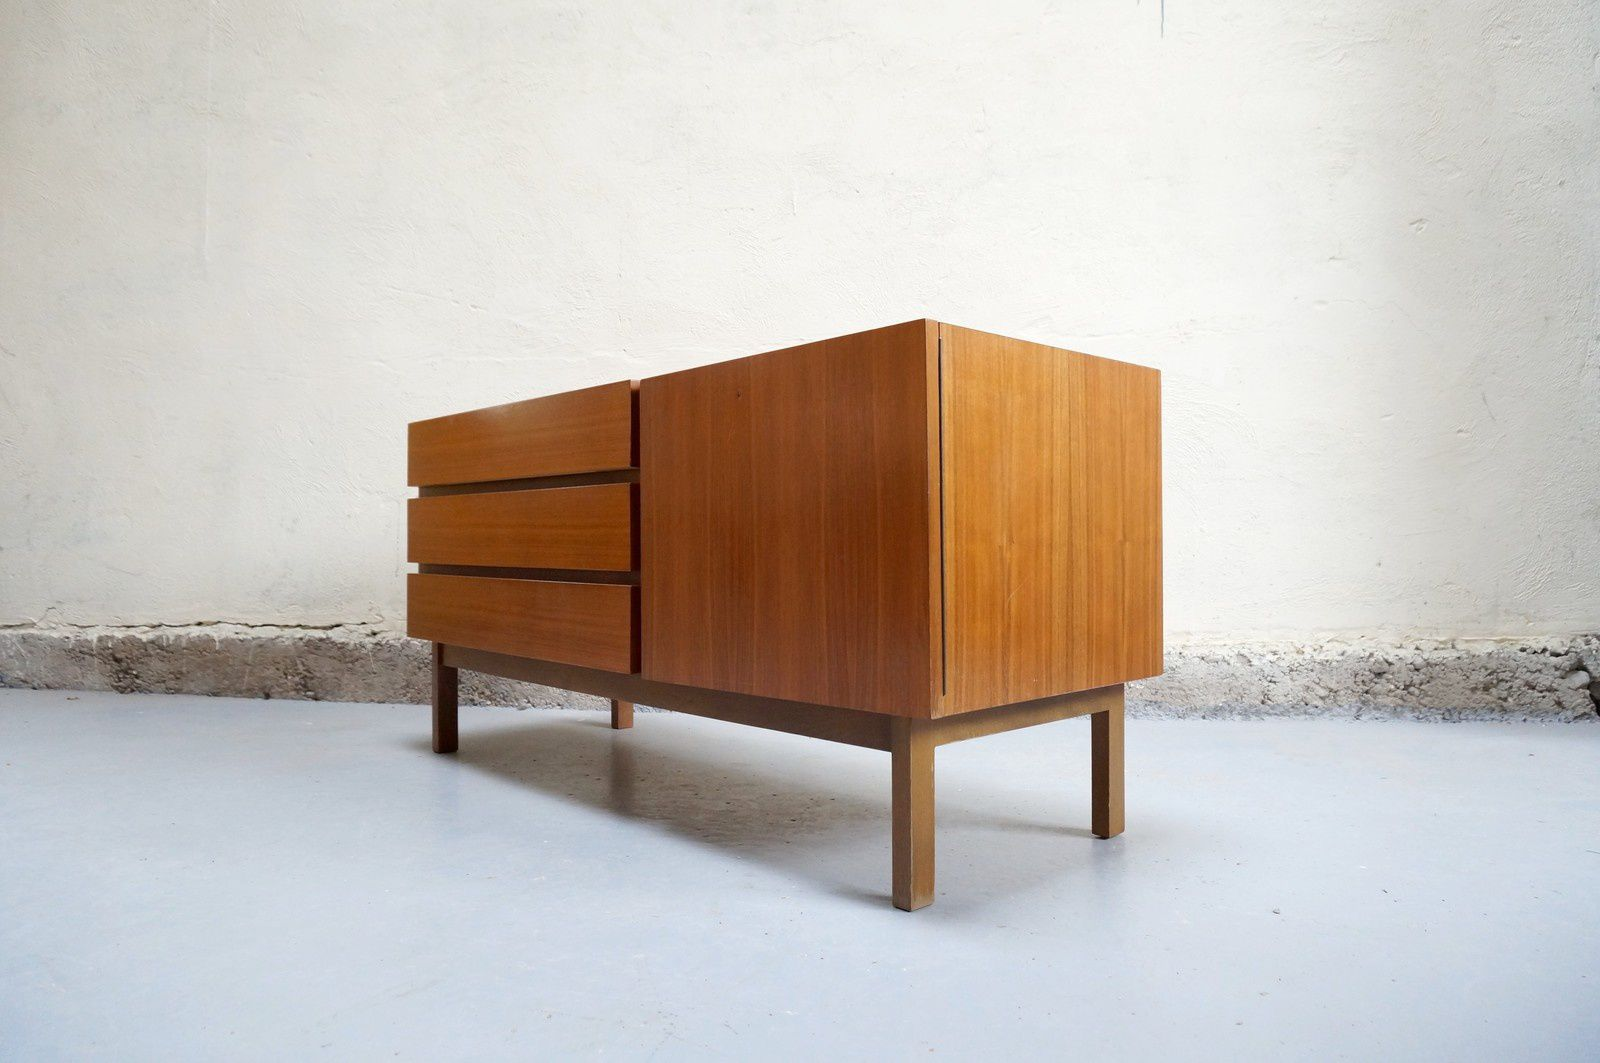 Meubles design scandinave vintage - Meuble suedois design ...